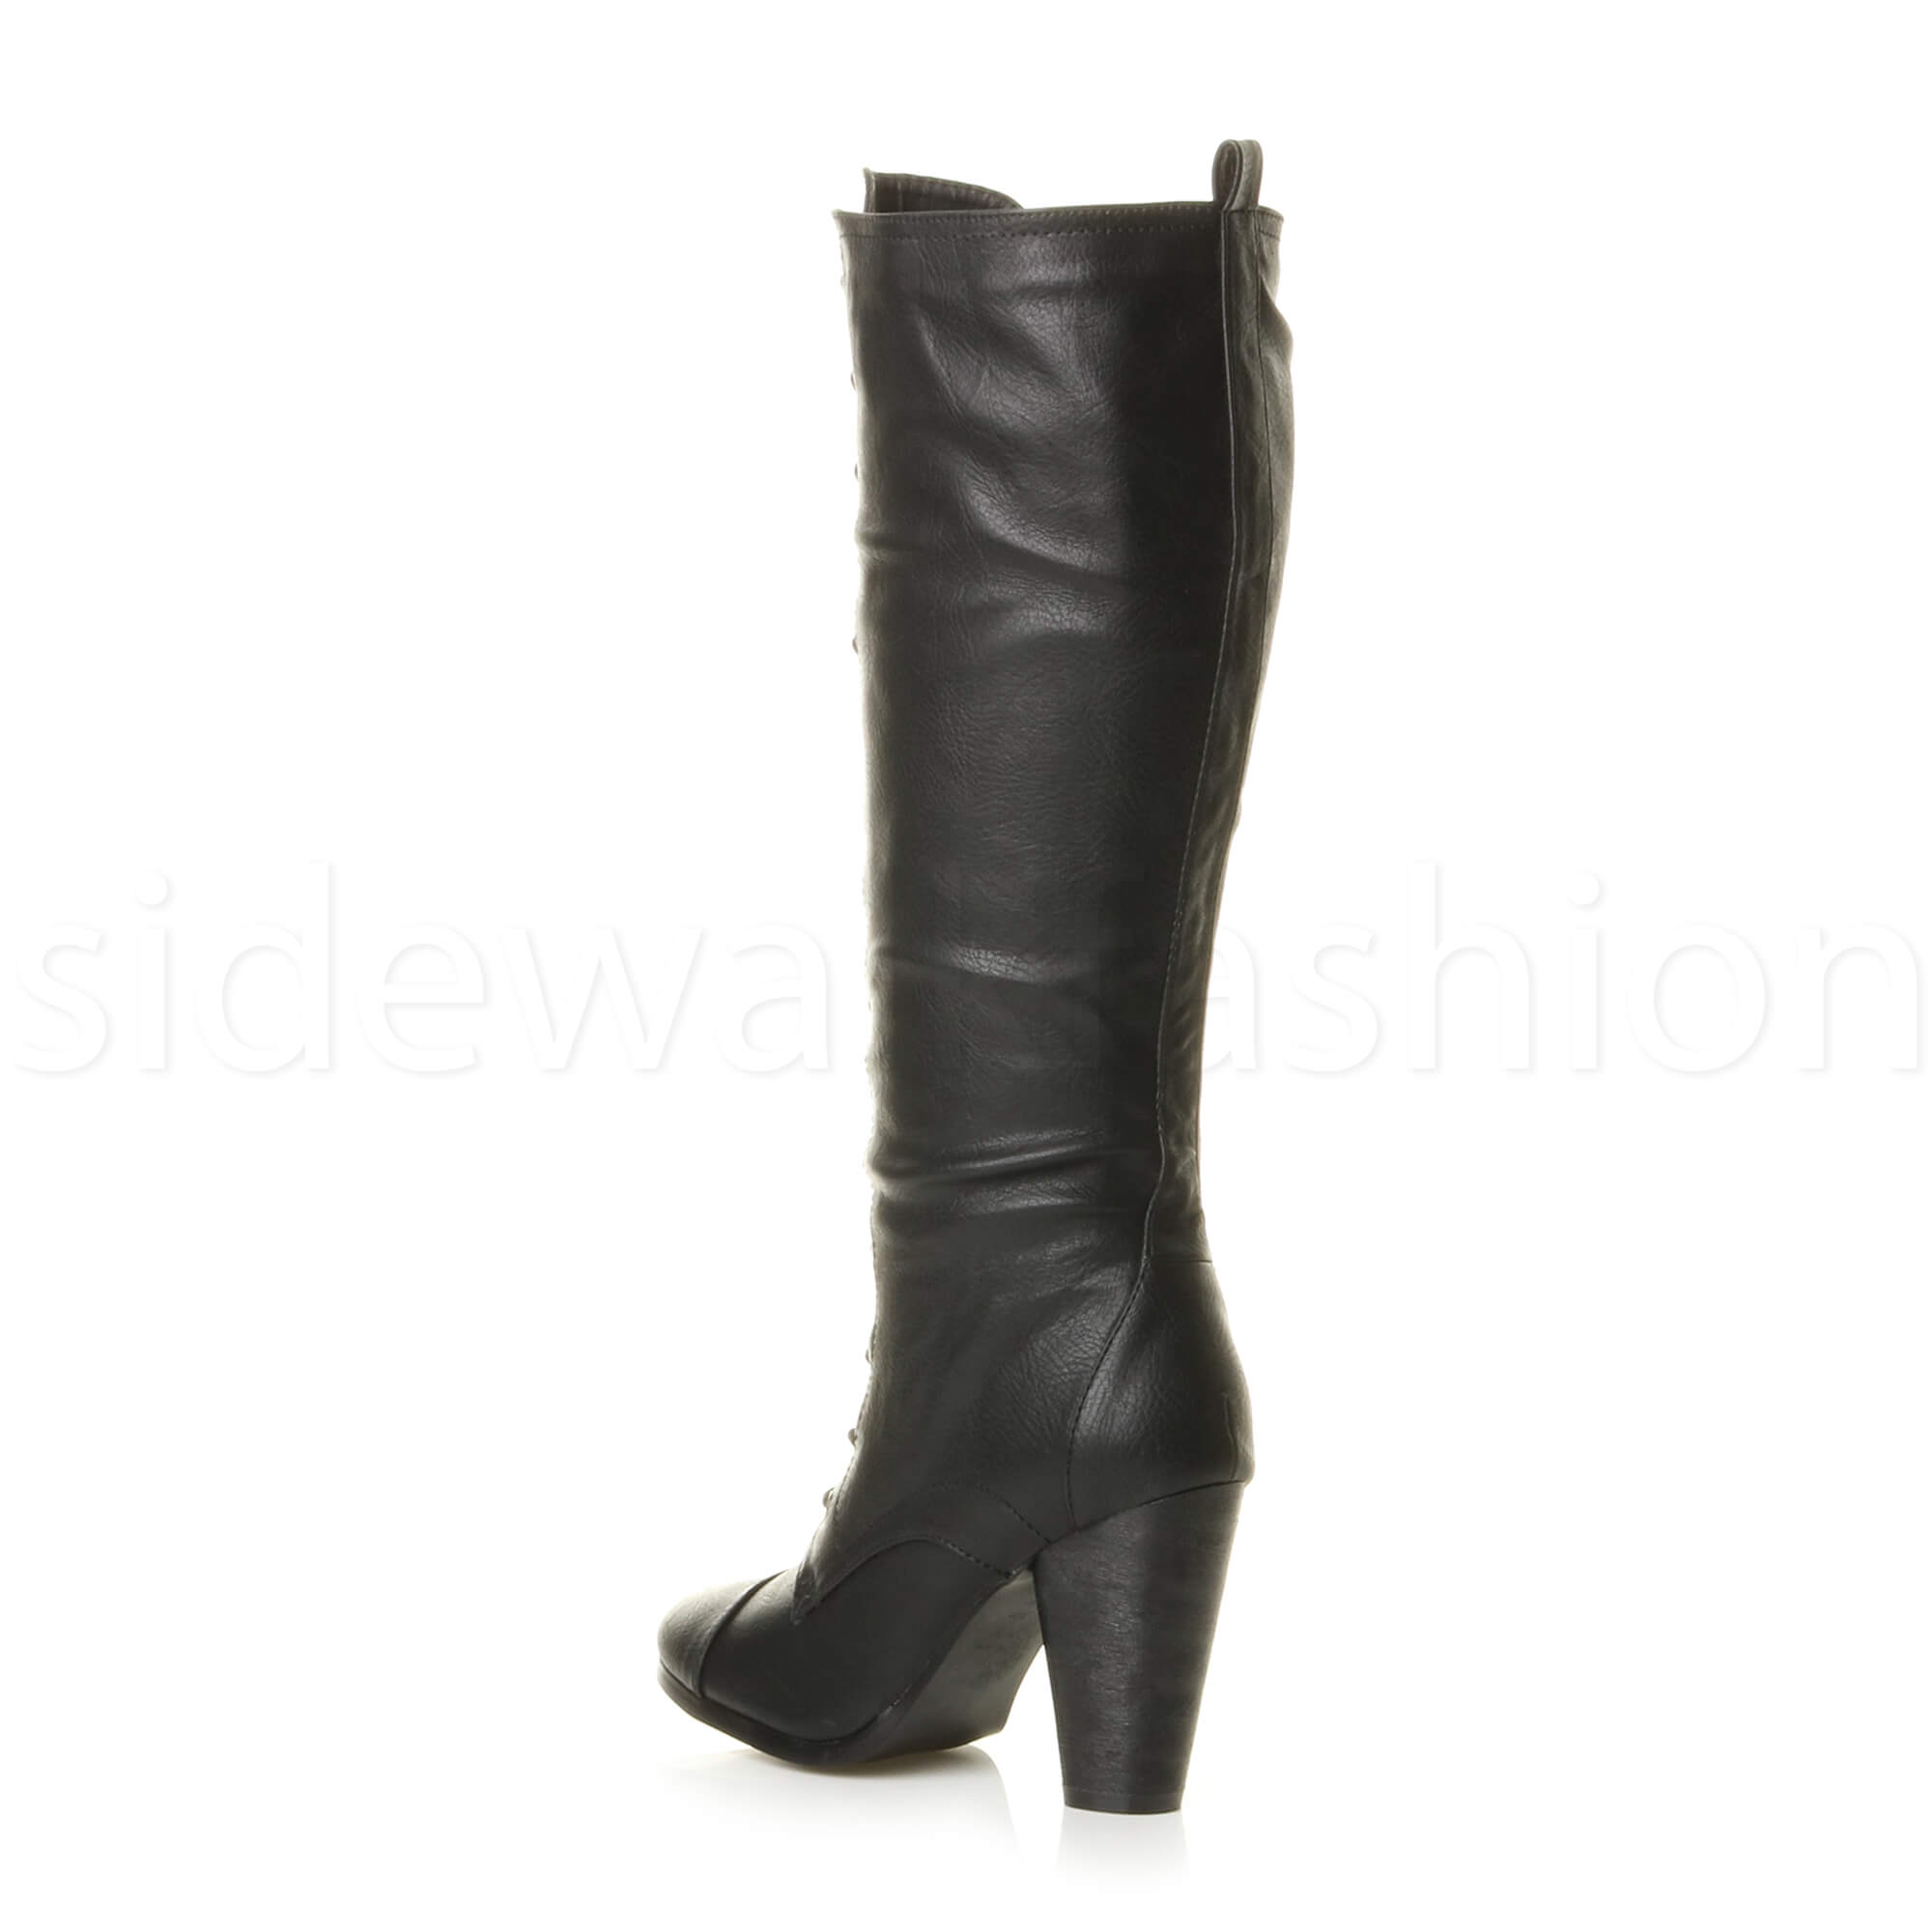 12621e074a2 Womens ladies lace up calf knee high heel combat military victorian ...